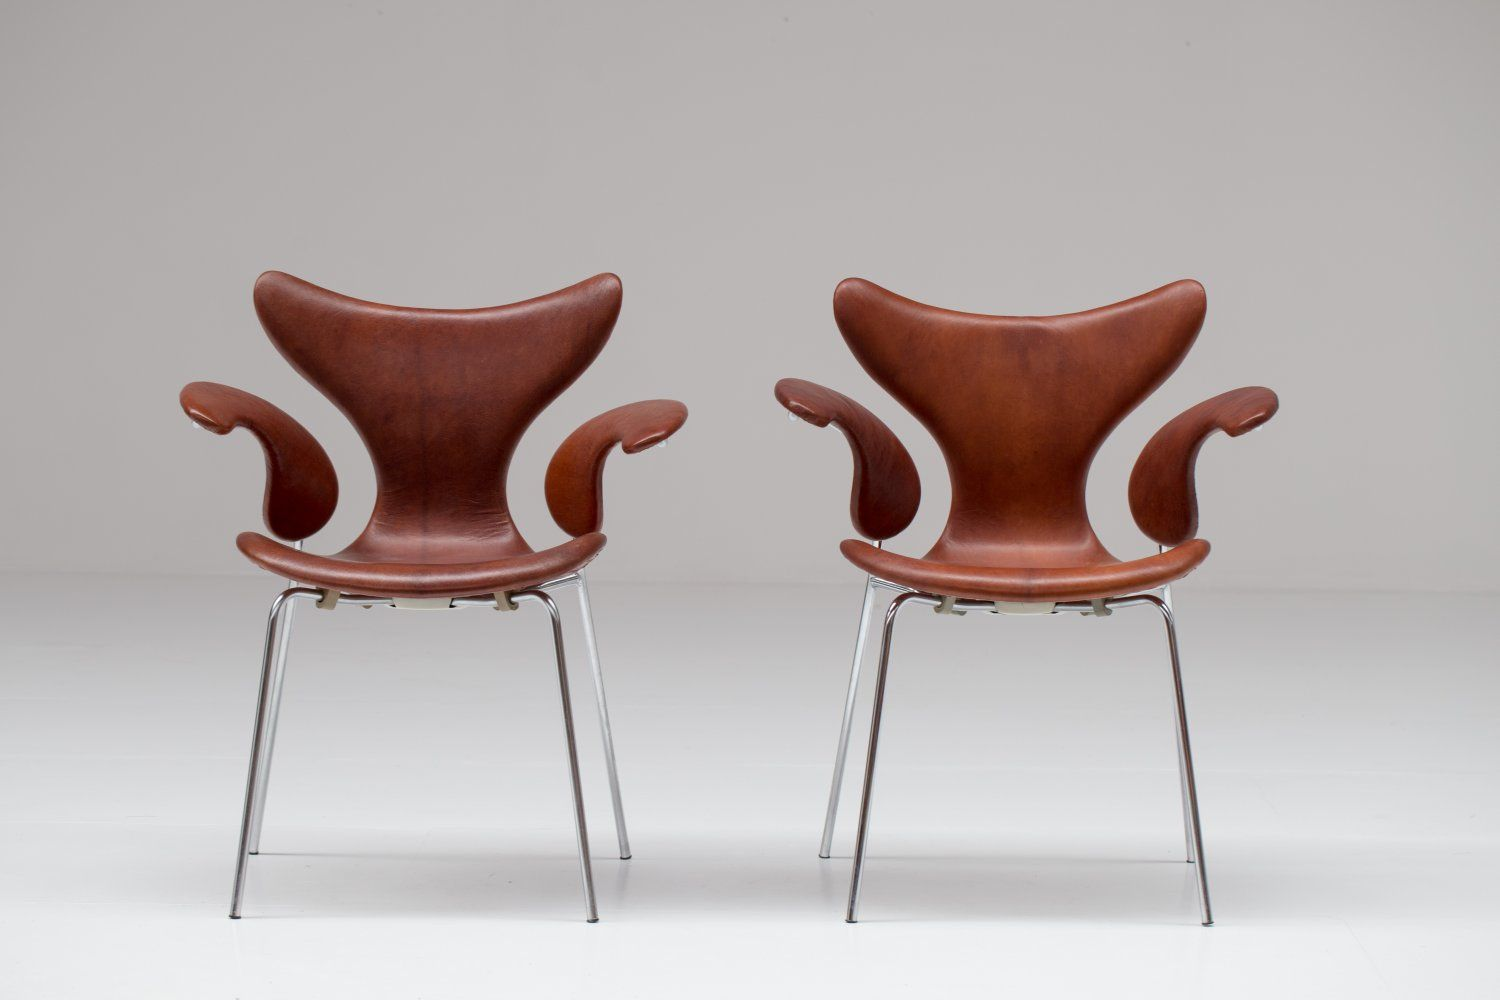 arne jacobsen furniture. Pair Of Leather Seagull Chairs By Arne Jacobsen Furniture F